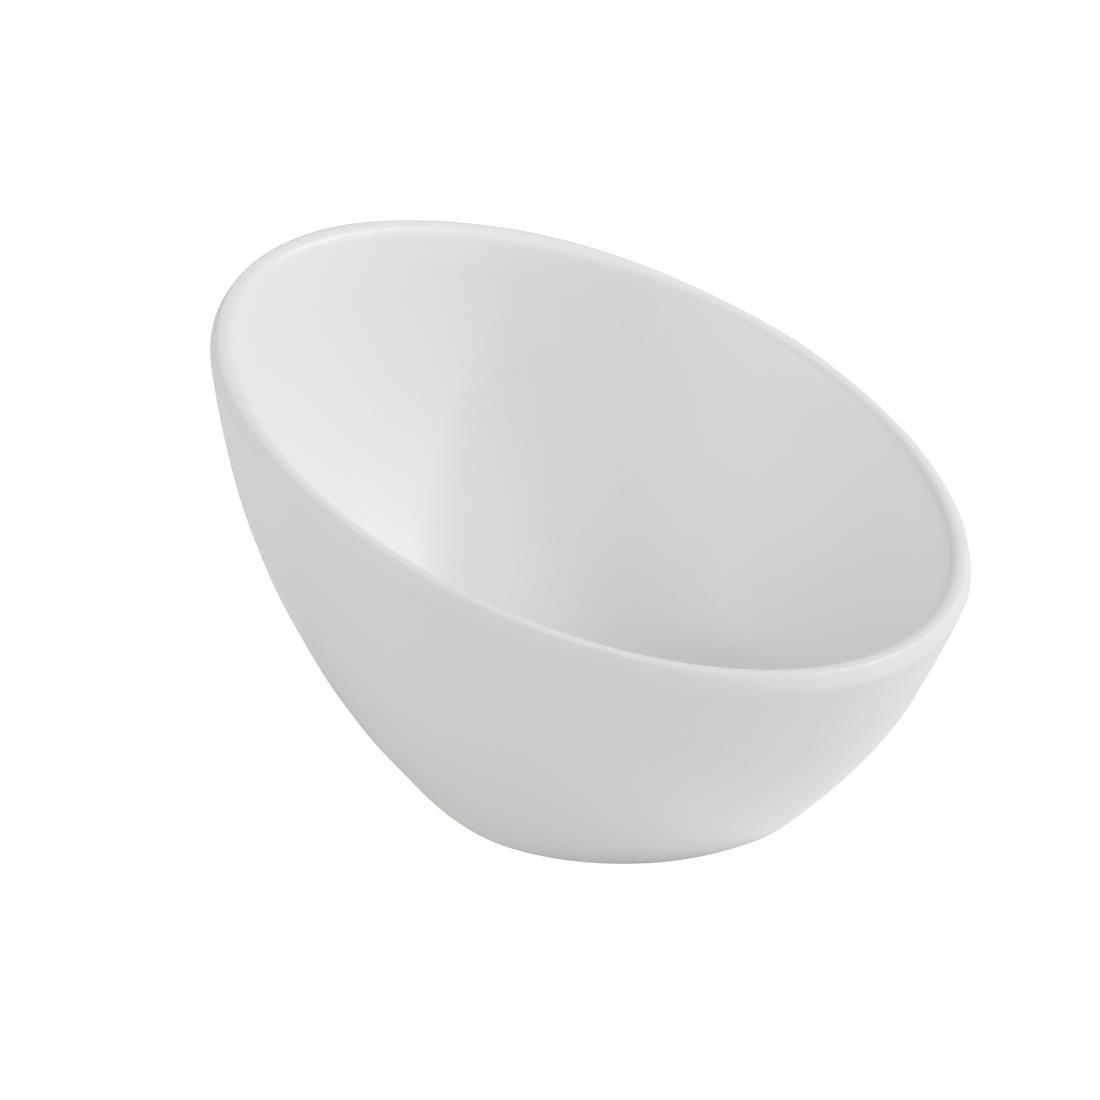 APS Zen Melamine Round Sloped Bowl White 150ml - Each - DA296